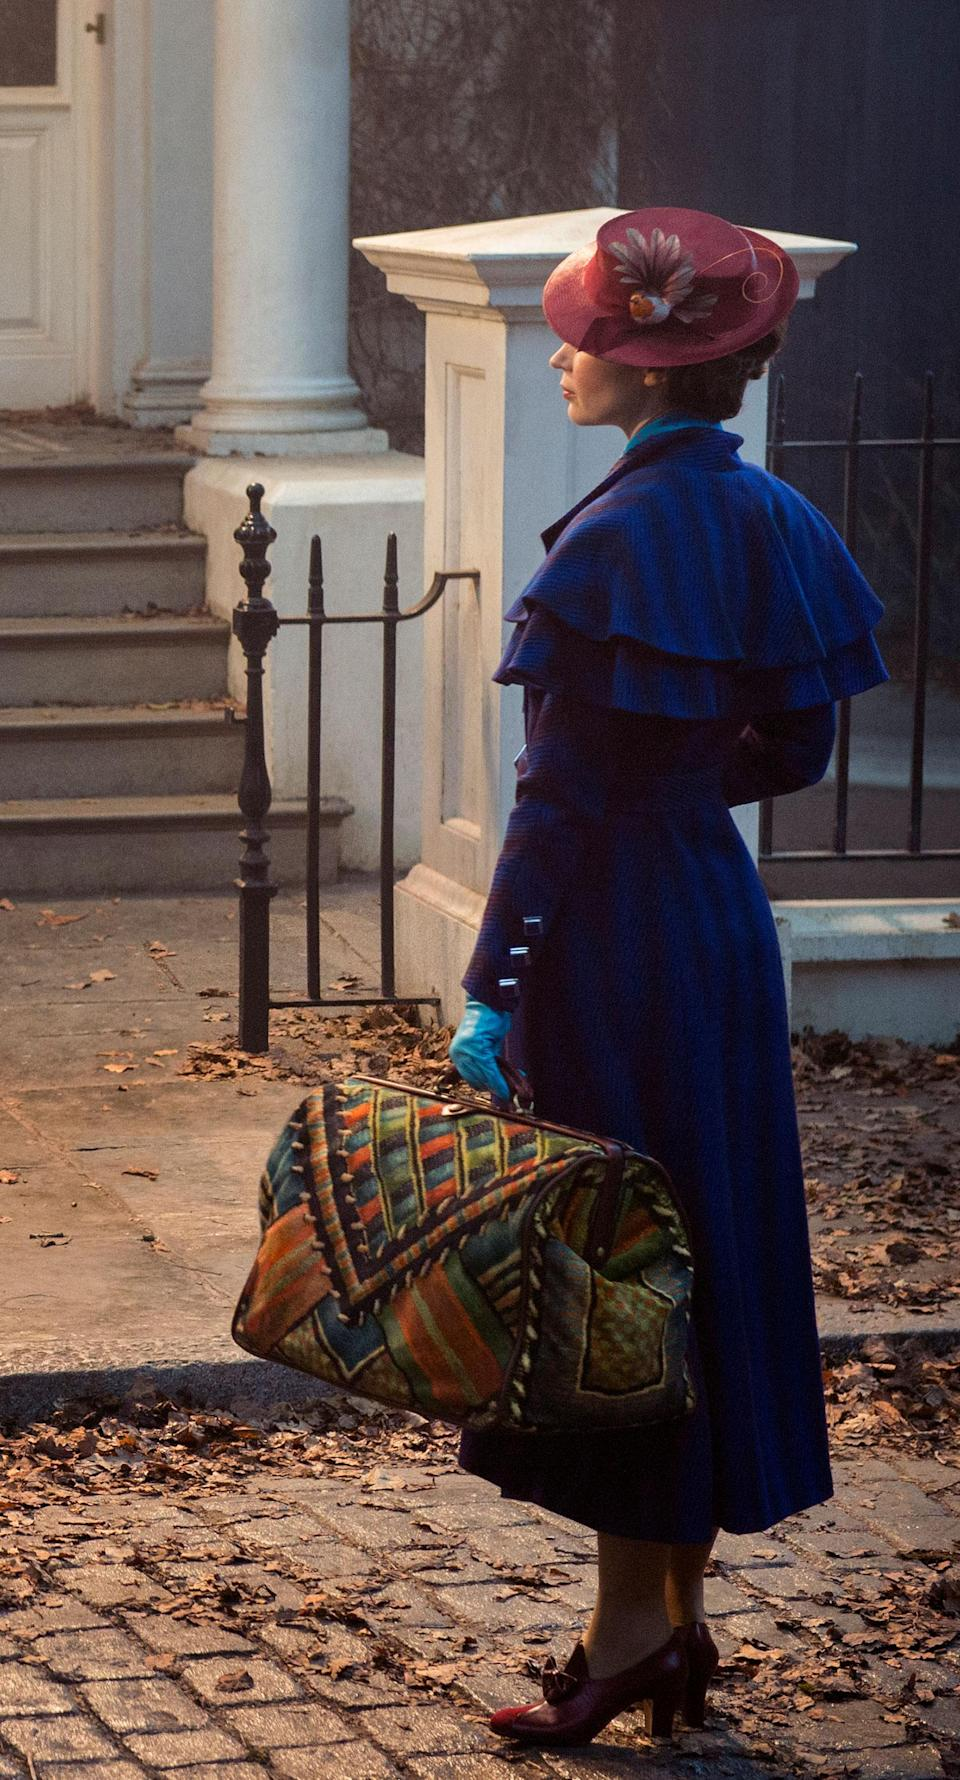 Emily Blunt in her Mary Poppins entrance costume, which was one of the first images released from the film (Disney)